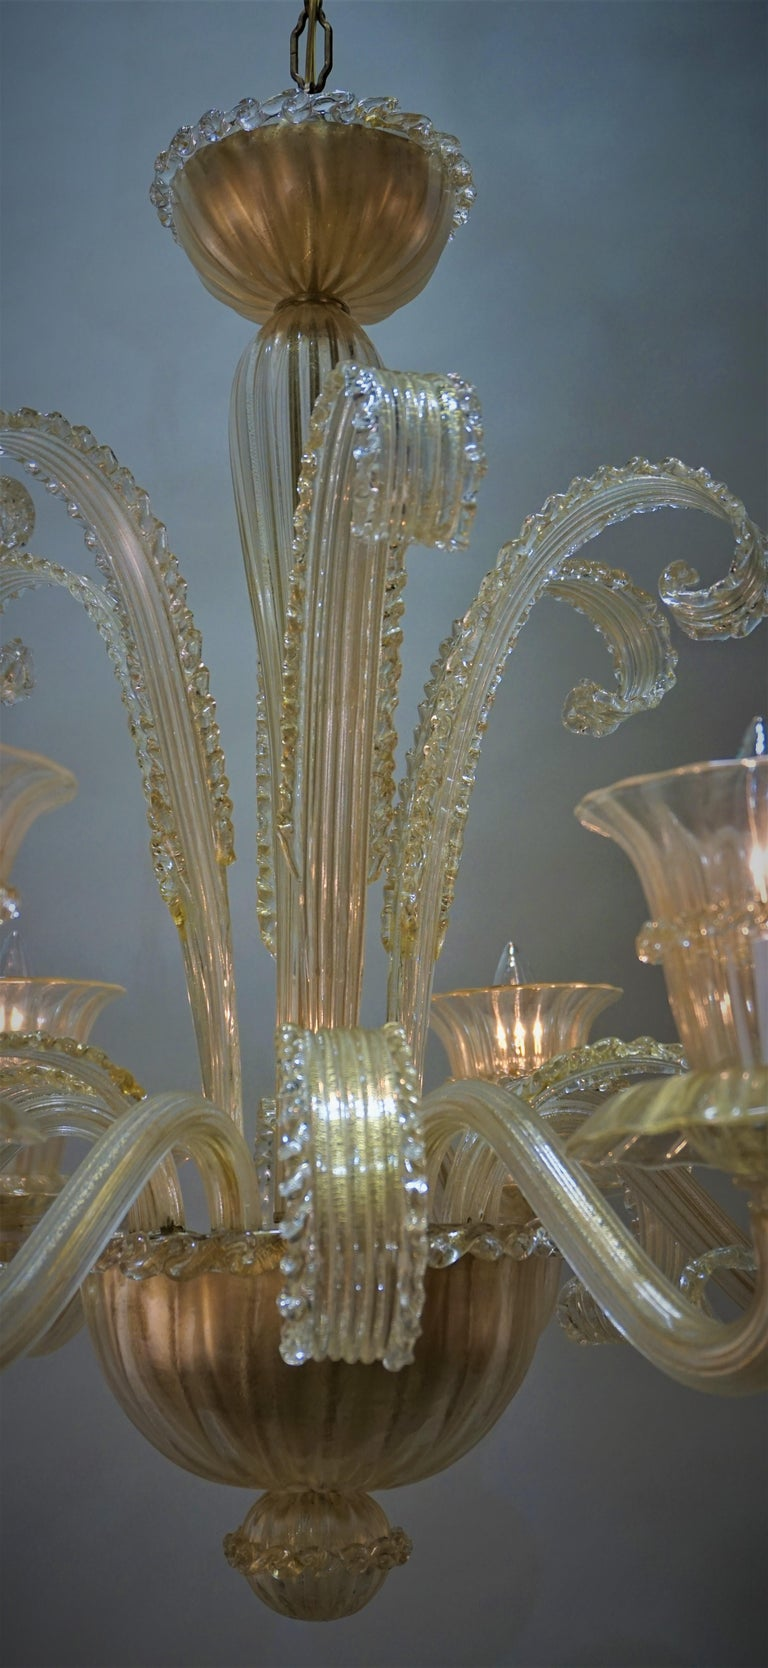 Murano Glass Chandelier by Barovier Toso In Good Condition For Sale In Fairfax, VA